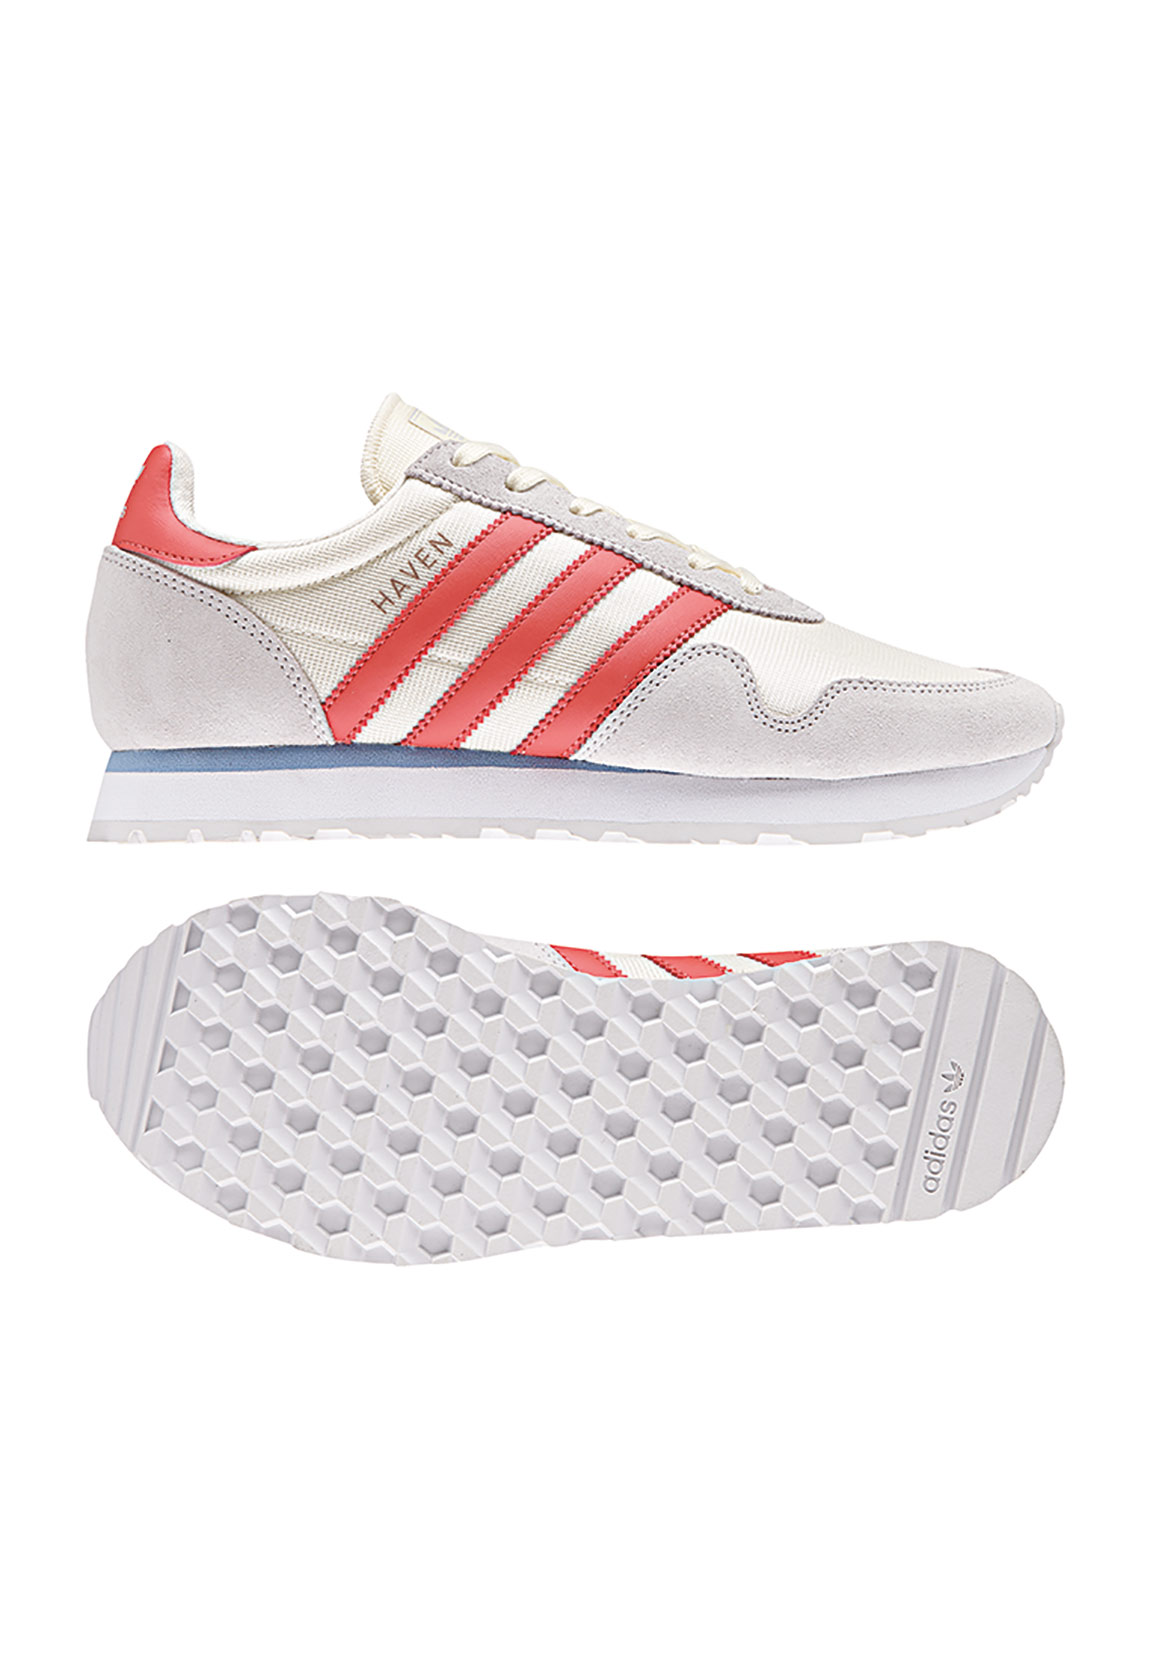 buy popular 8b7b7 1beb1 Adidas Originals Sneaker Damen HAVEN W CQ2525 Beige